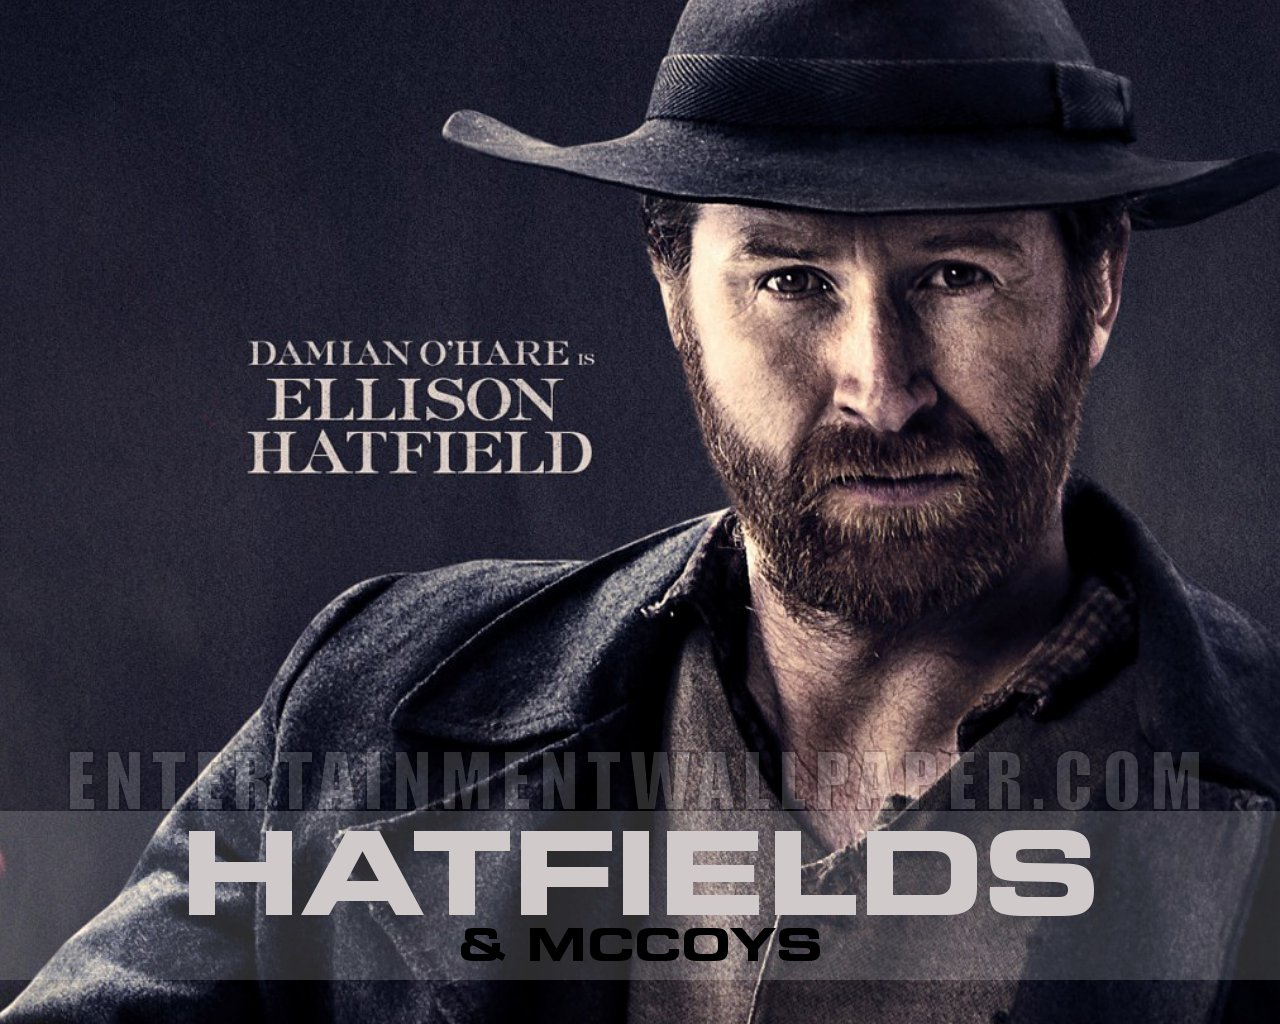 Ellison Hatfield - Hatfields & McCoys Wallpaper (32127387) - Fanpop